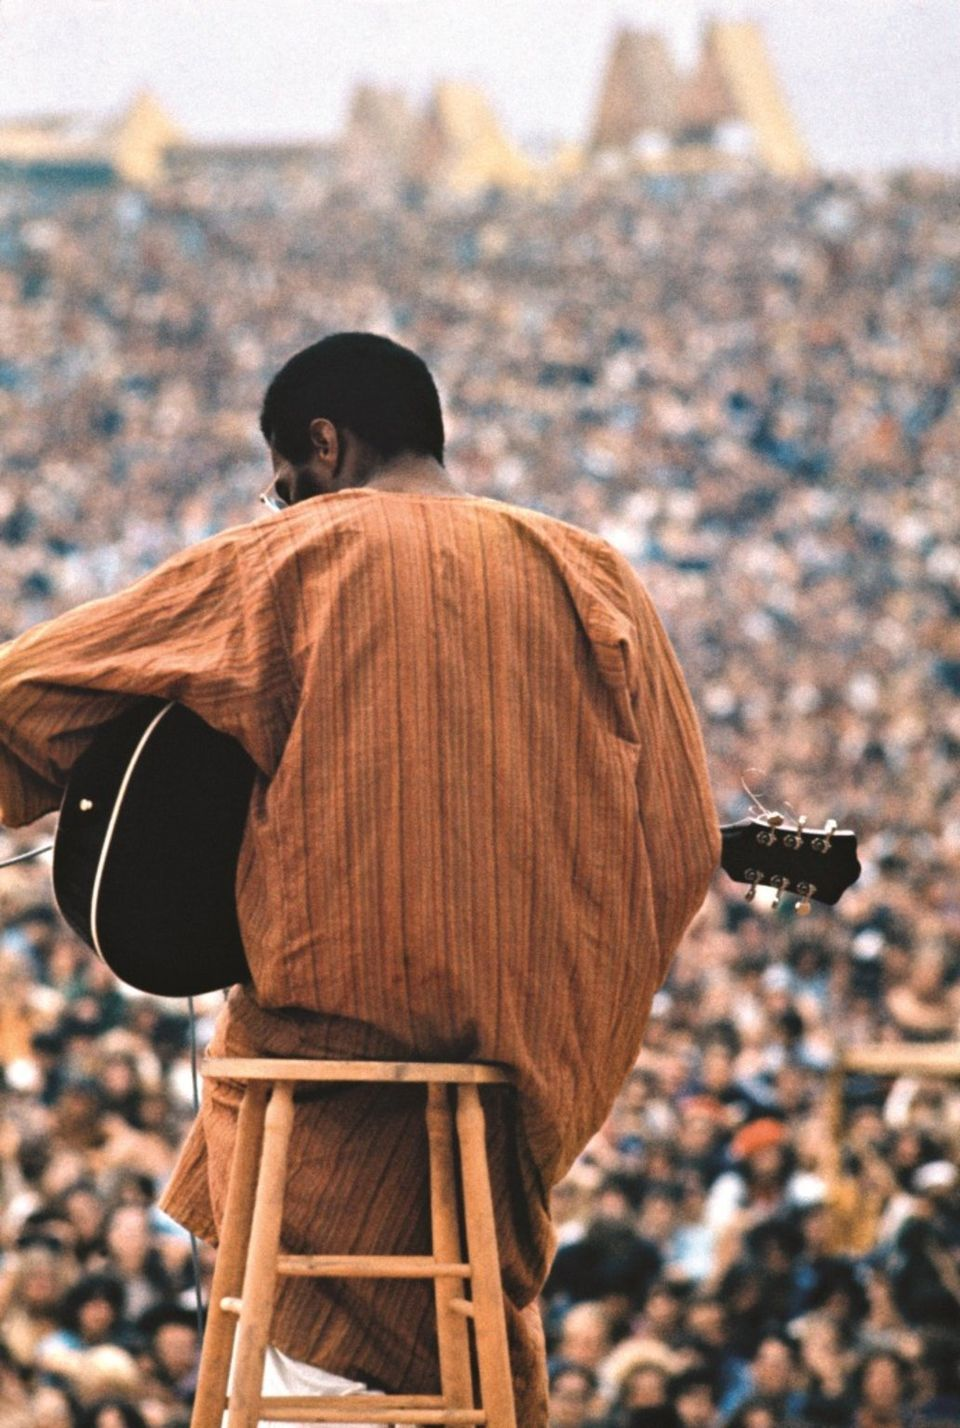 Richie Havens At Woodstock C Elliott Landy 1969 Richie Havens At